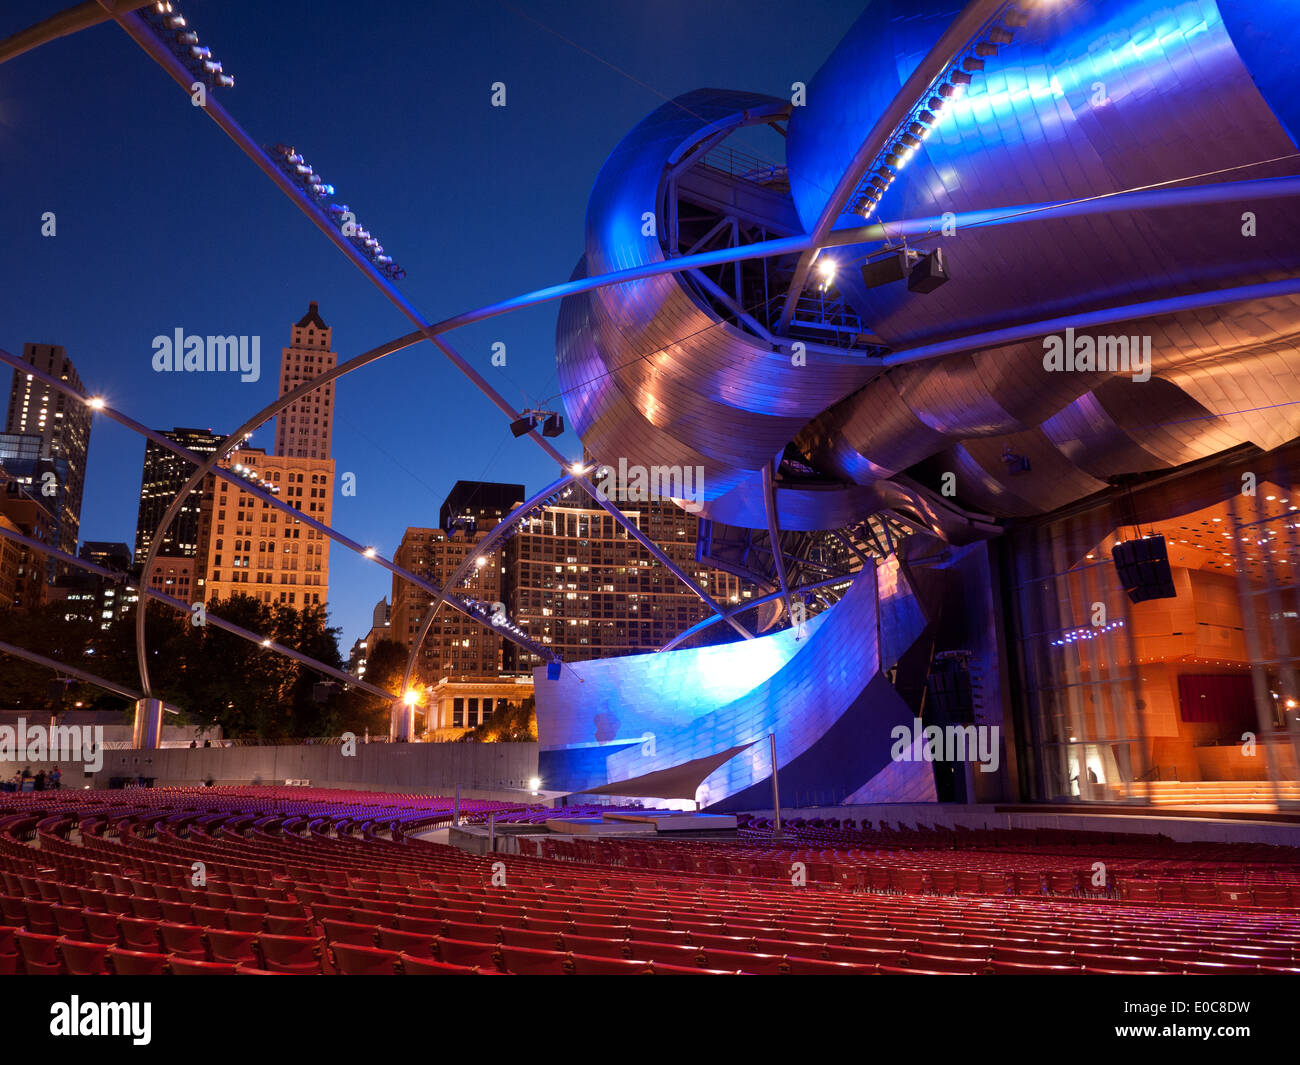 A view of the Jay Pritzker Pavilion, at night, in Millennium Park in Chicago, Illinois. - Stock Image